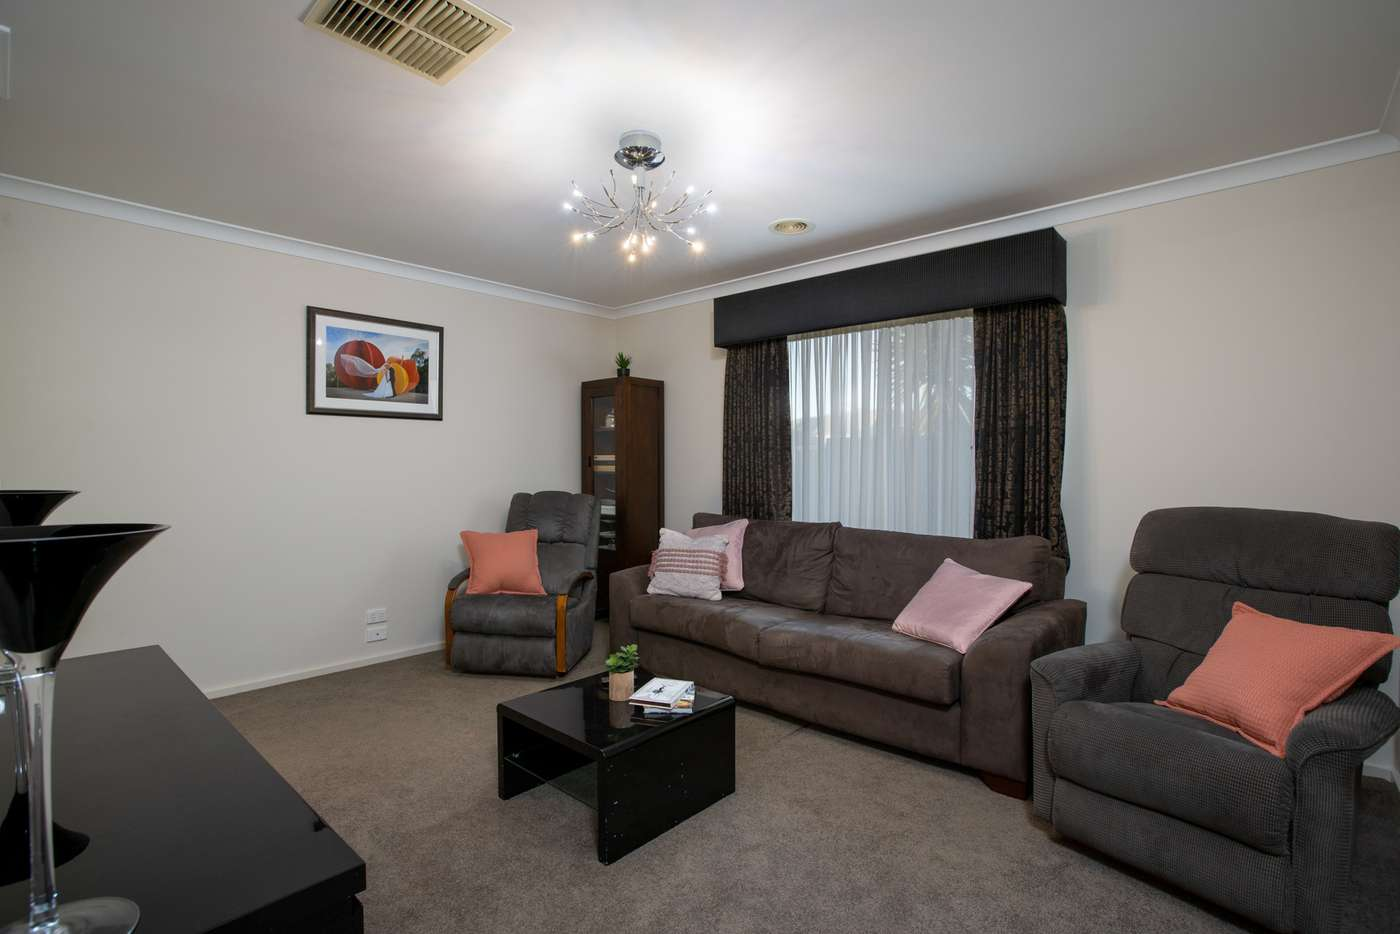 Fifth view of Homely house listing, 8 Fitzroy Street, Wodonga VIC 3690